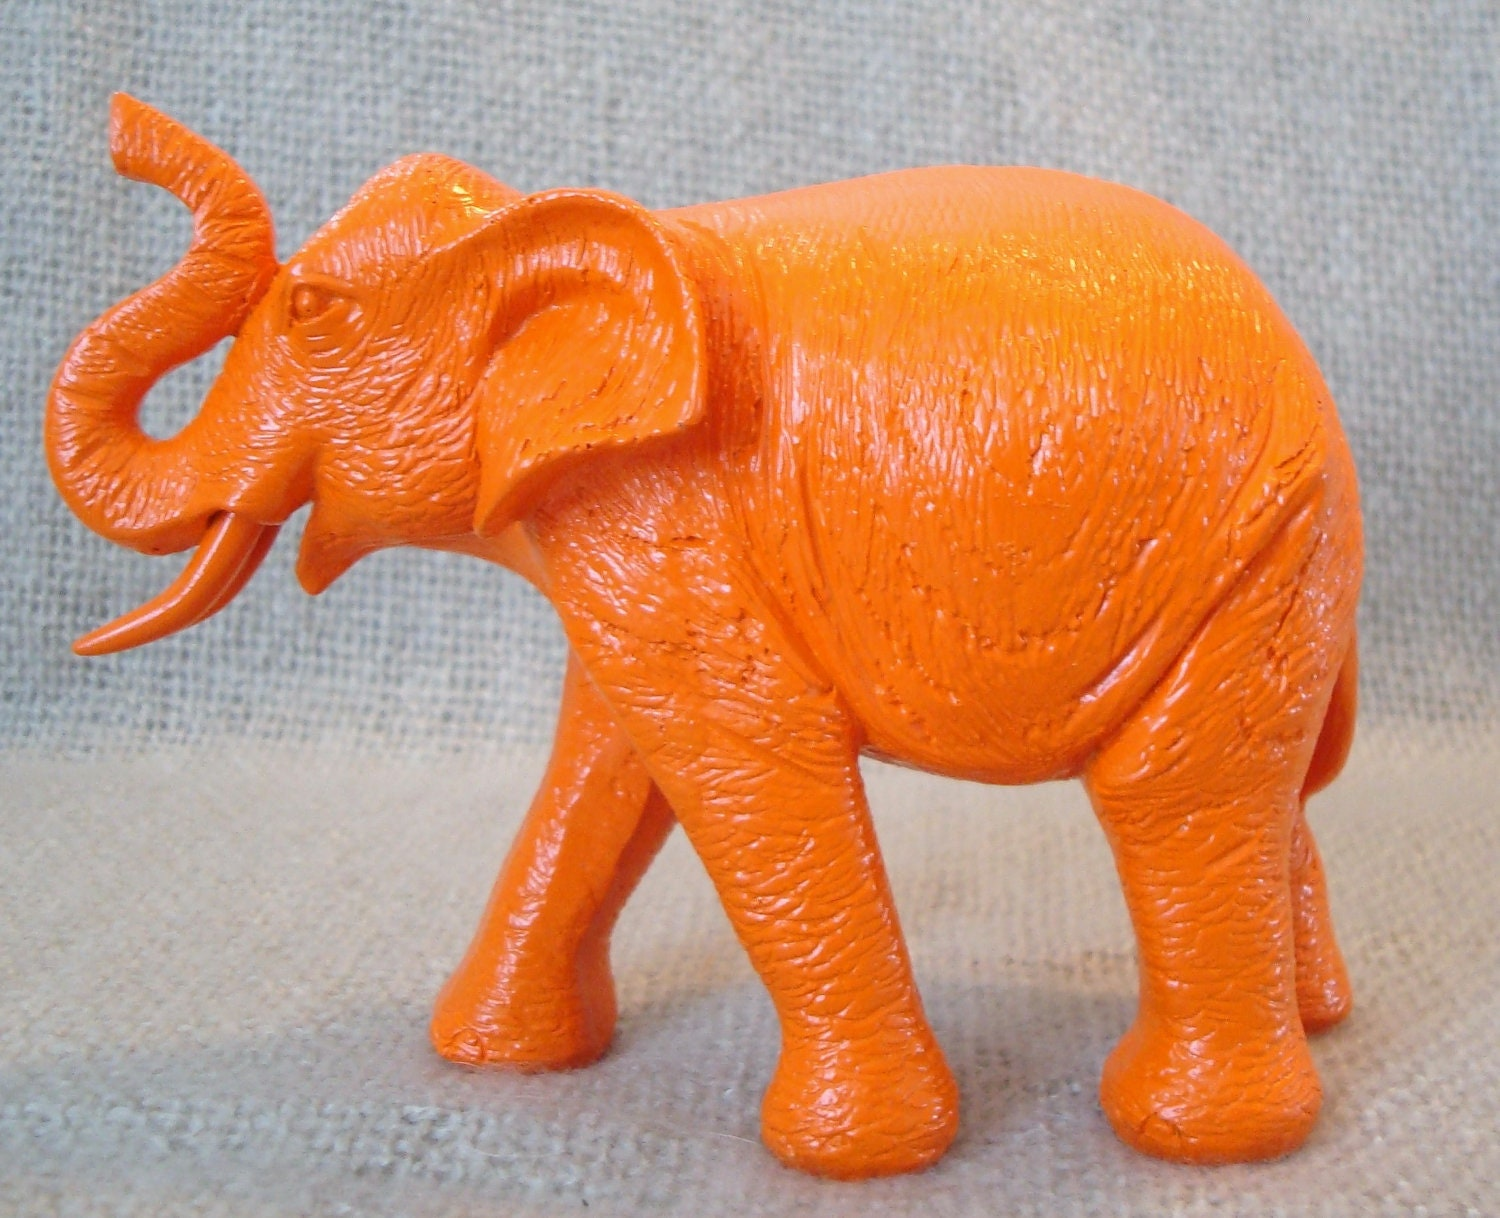 Orange Elephant Neon Nursery Decor Orange Animal Statue